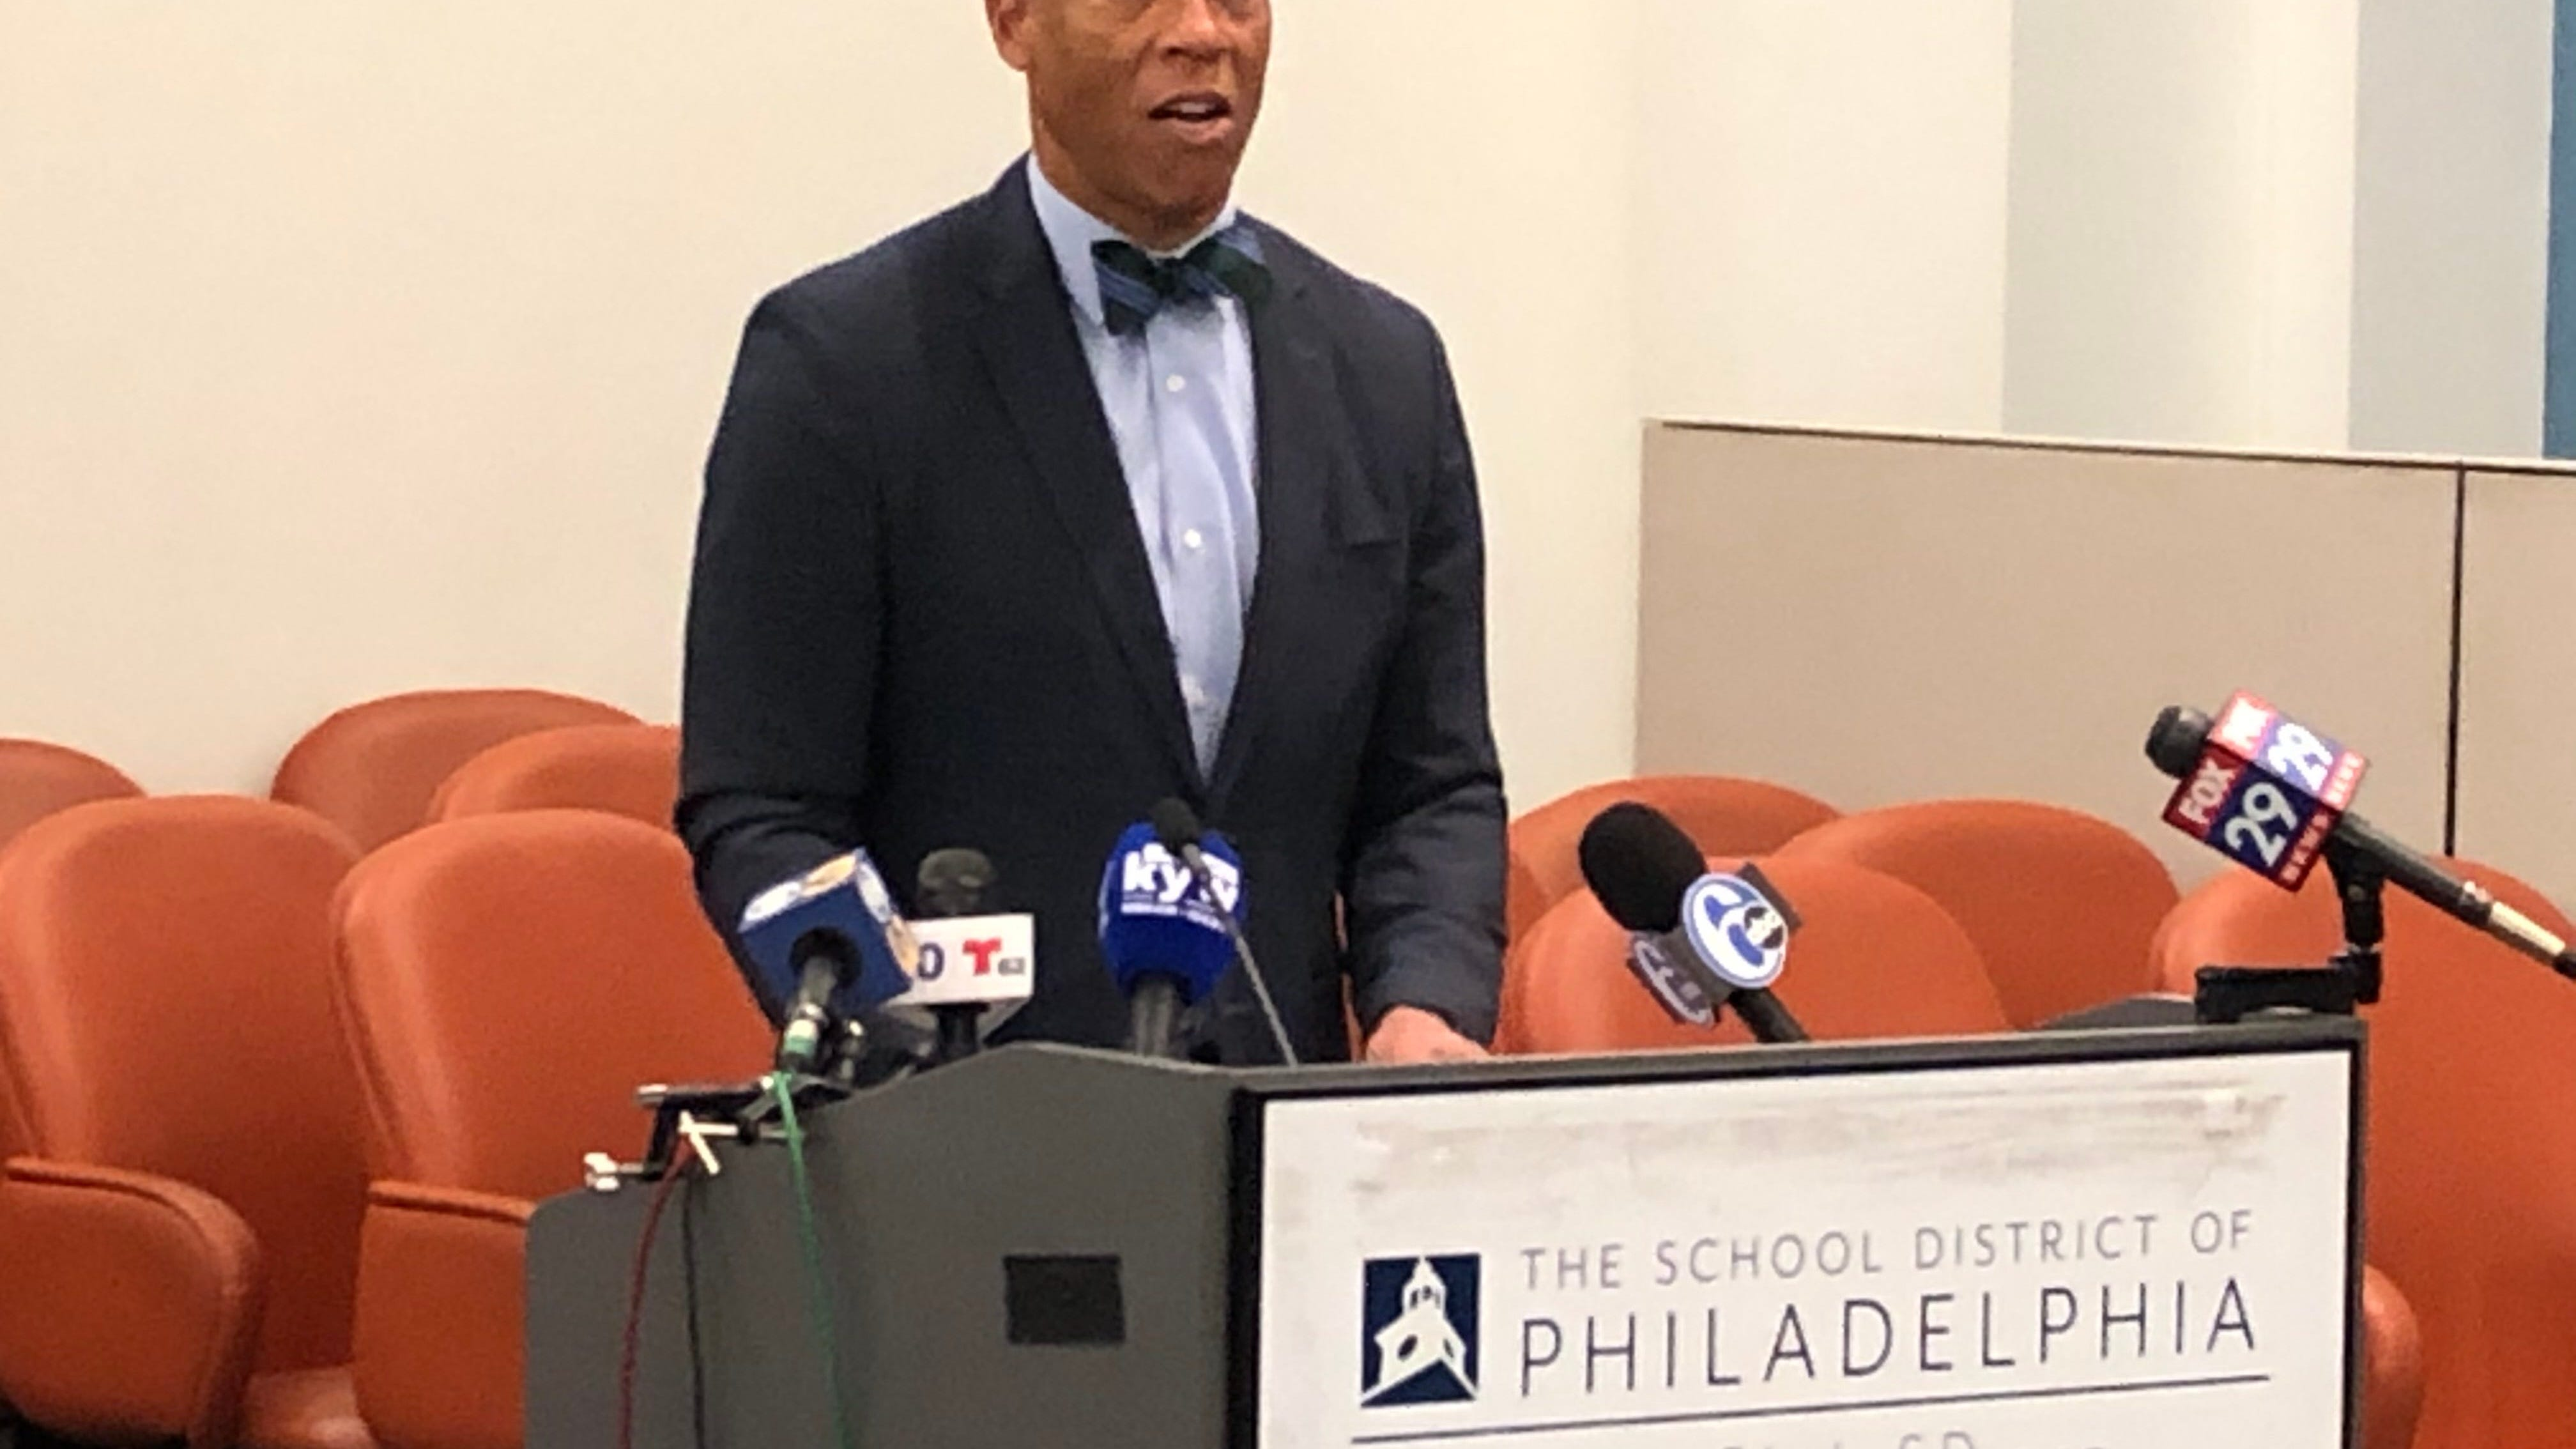 With his contract nearing end, Hite focuses on Philly students this summer